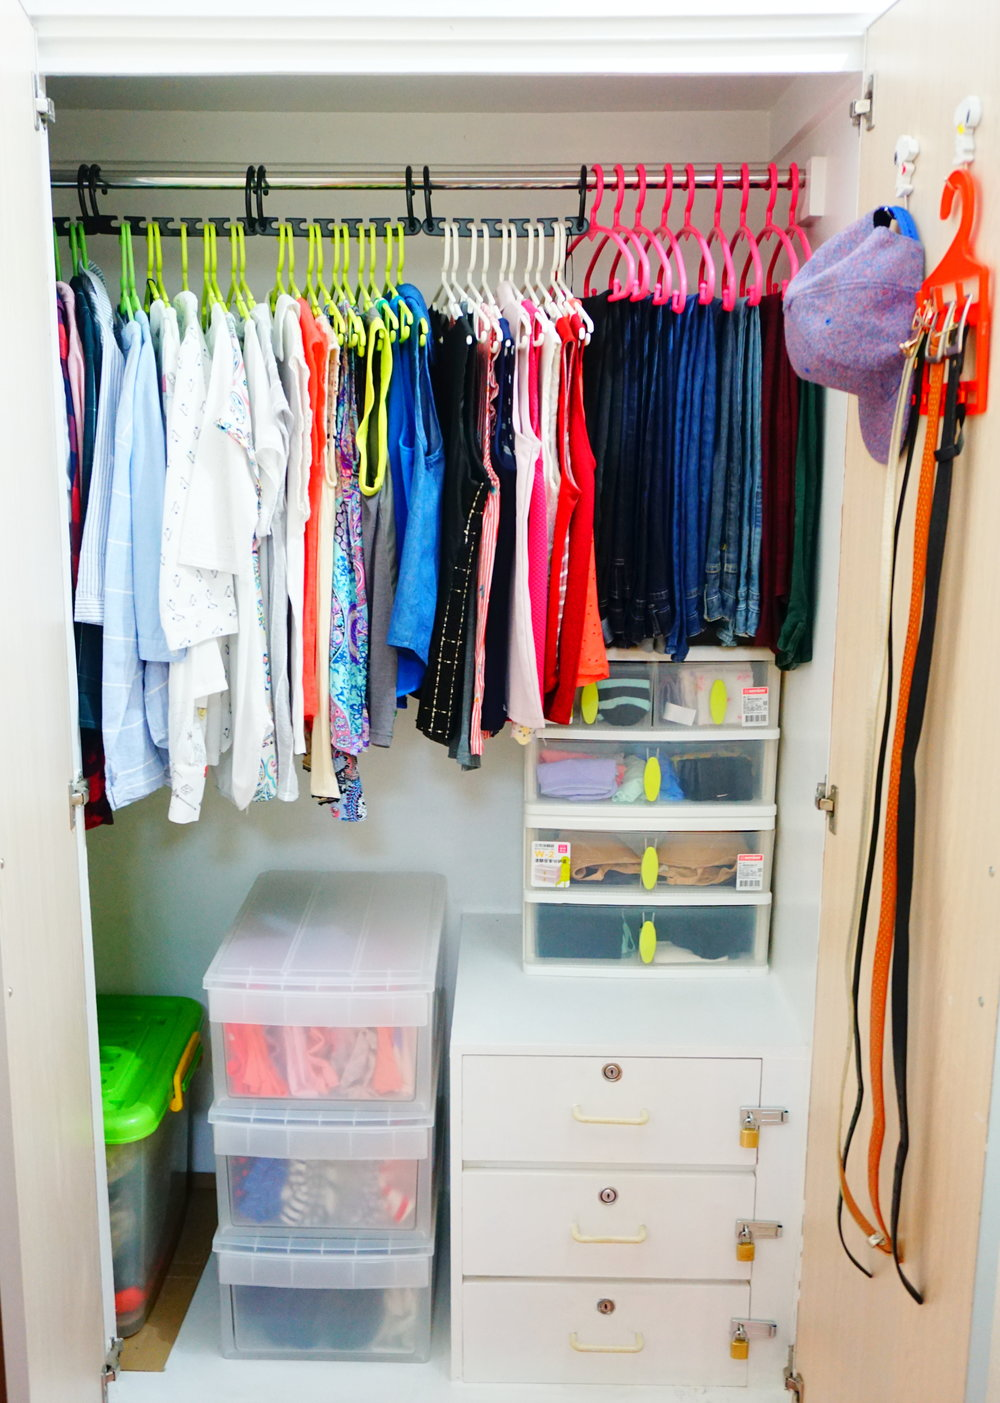 My main closet is now very spacious after decluttering and storing my other tops in drawers